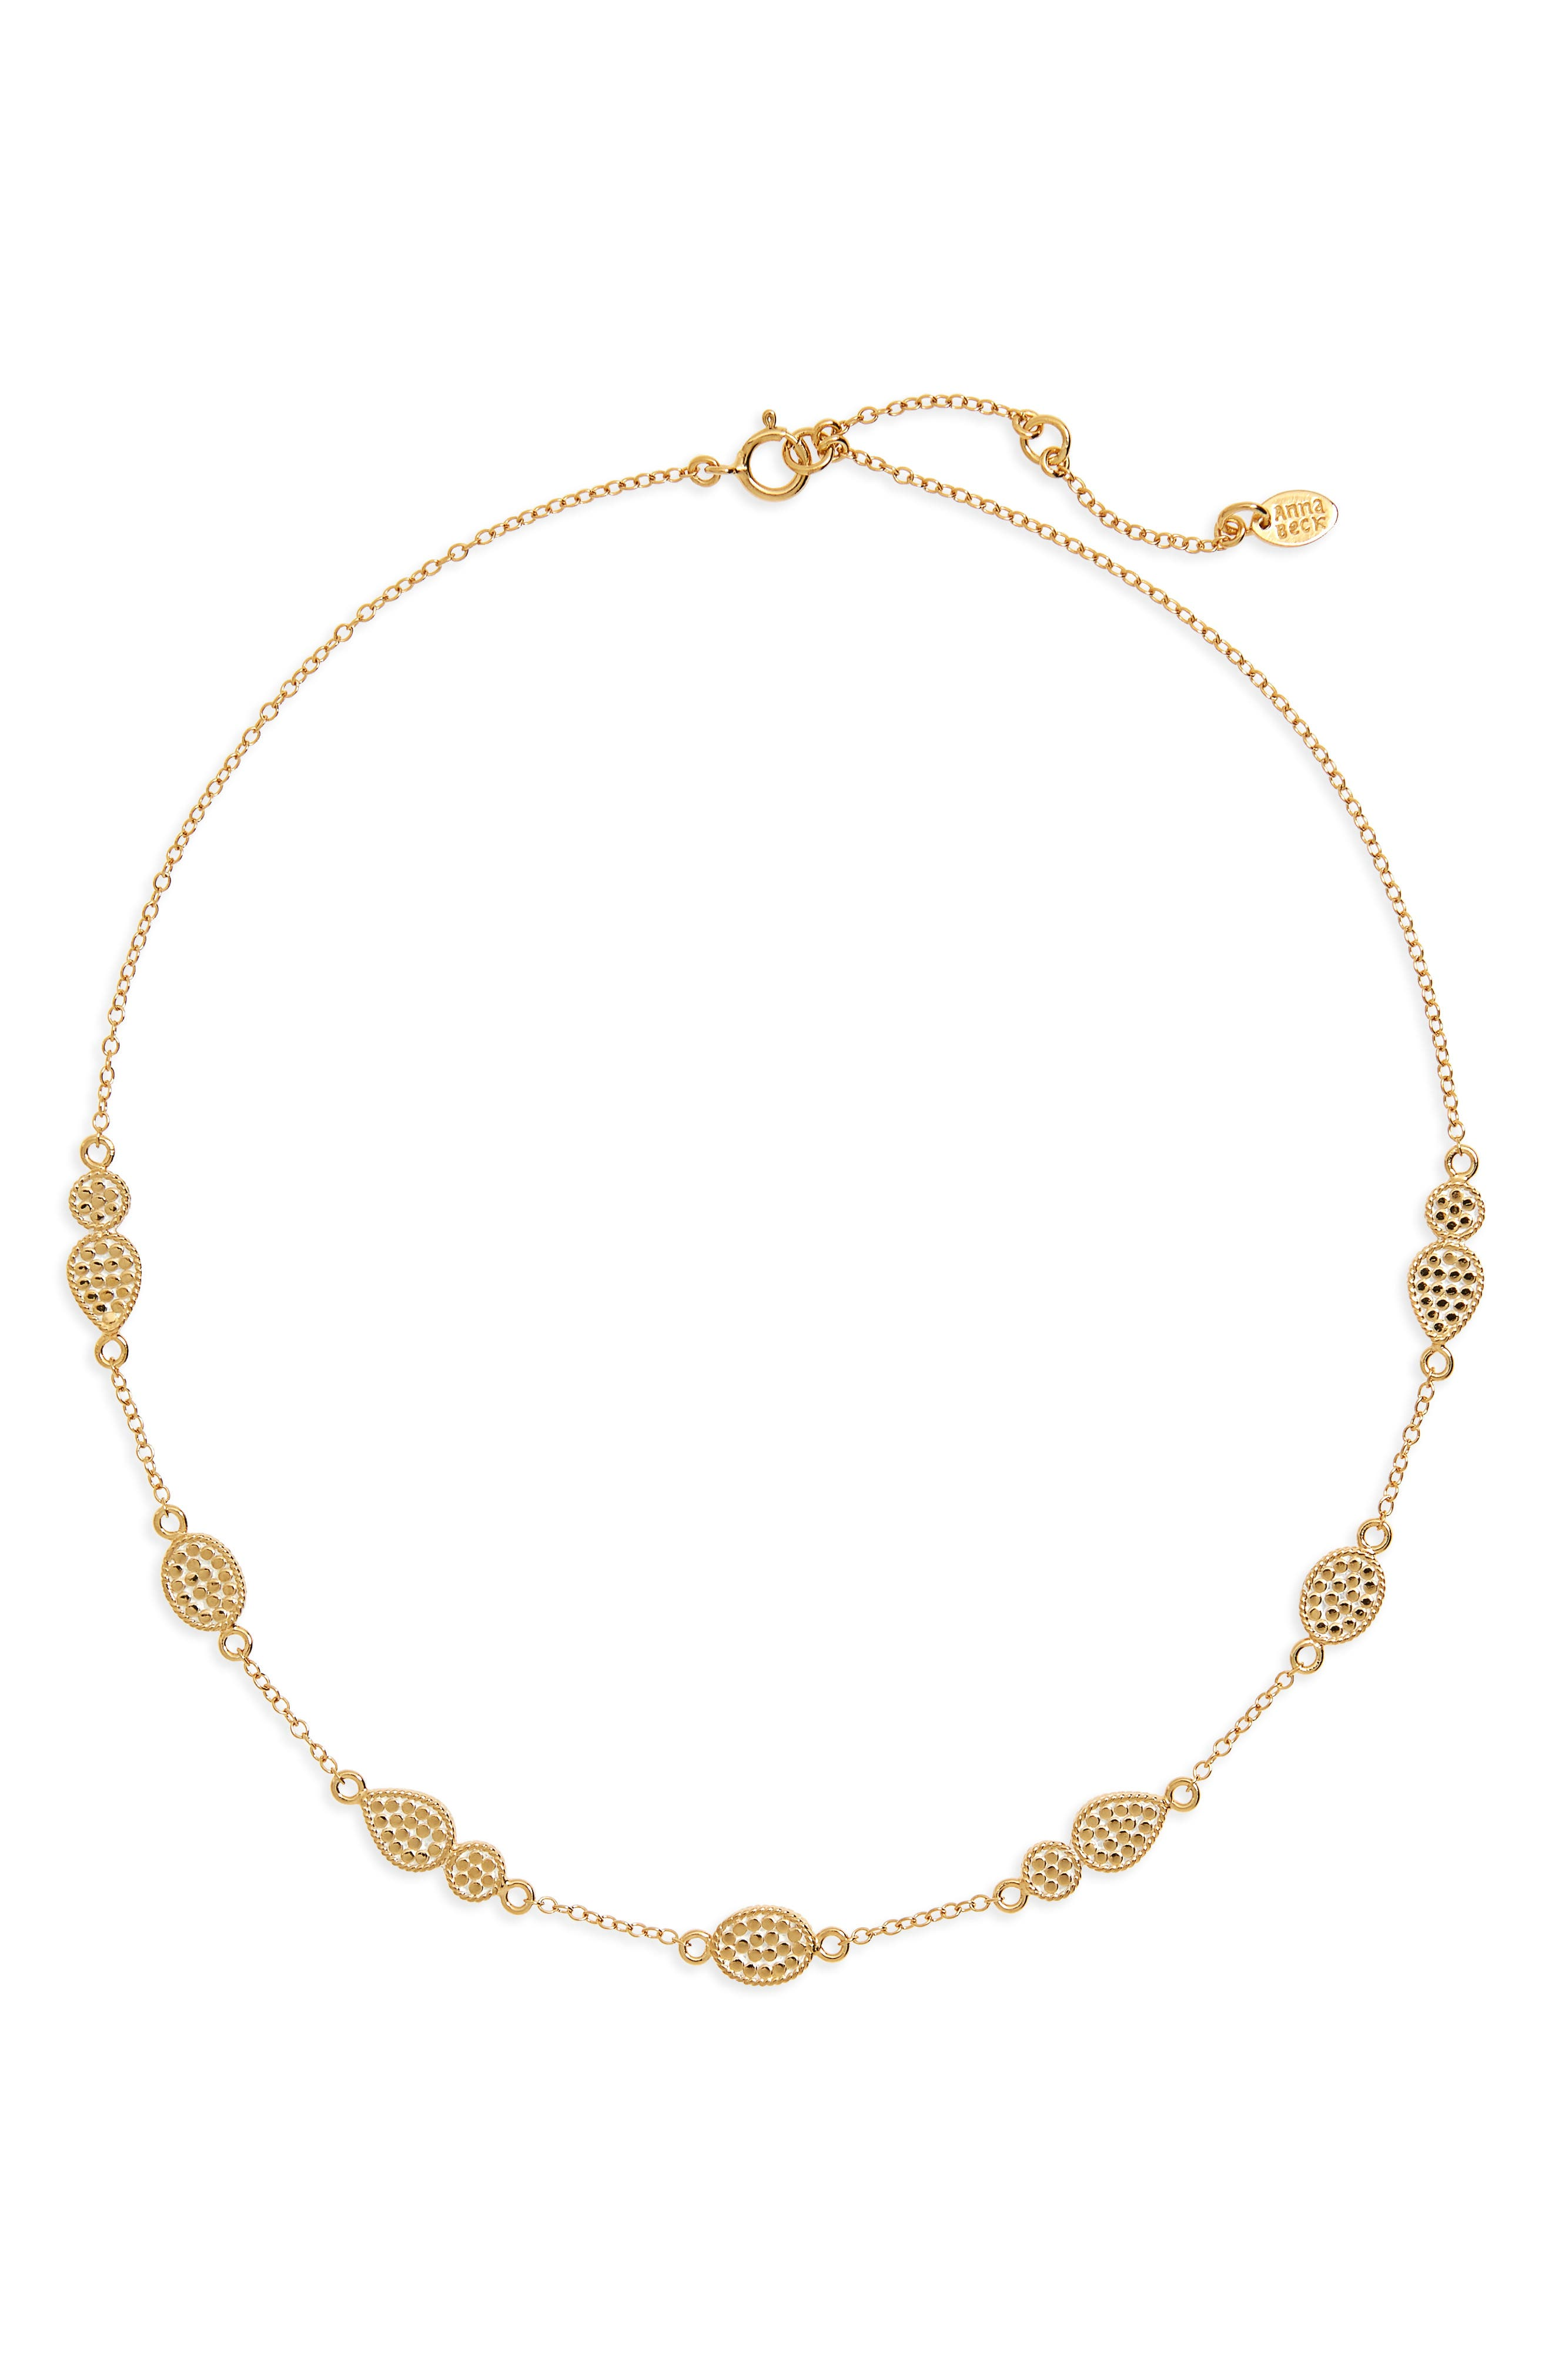 Gold Station Collar Necklace,                             Main thumbnail 1, color,                             GOLD